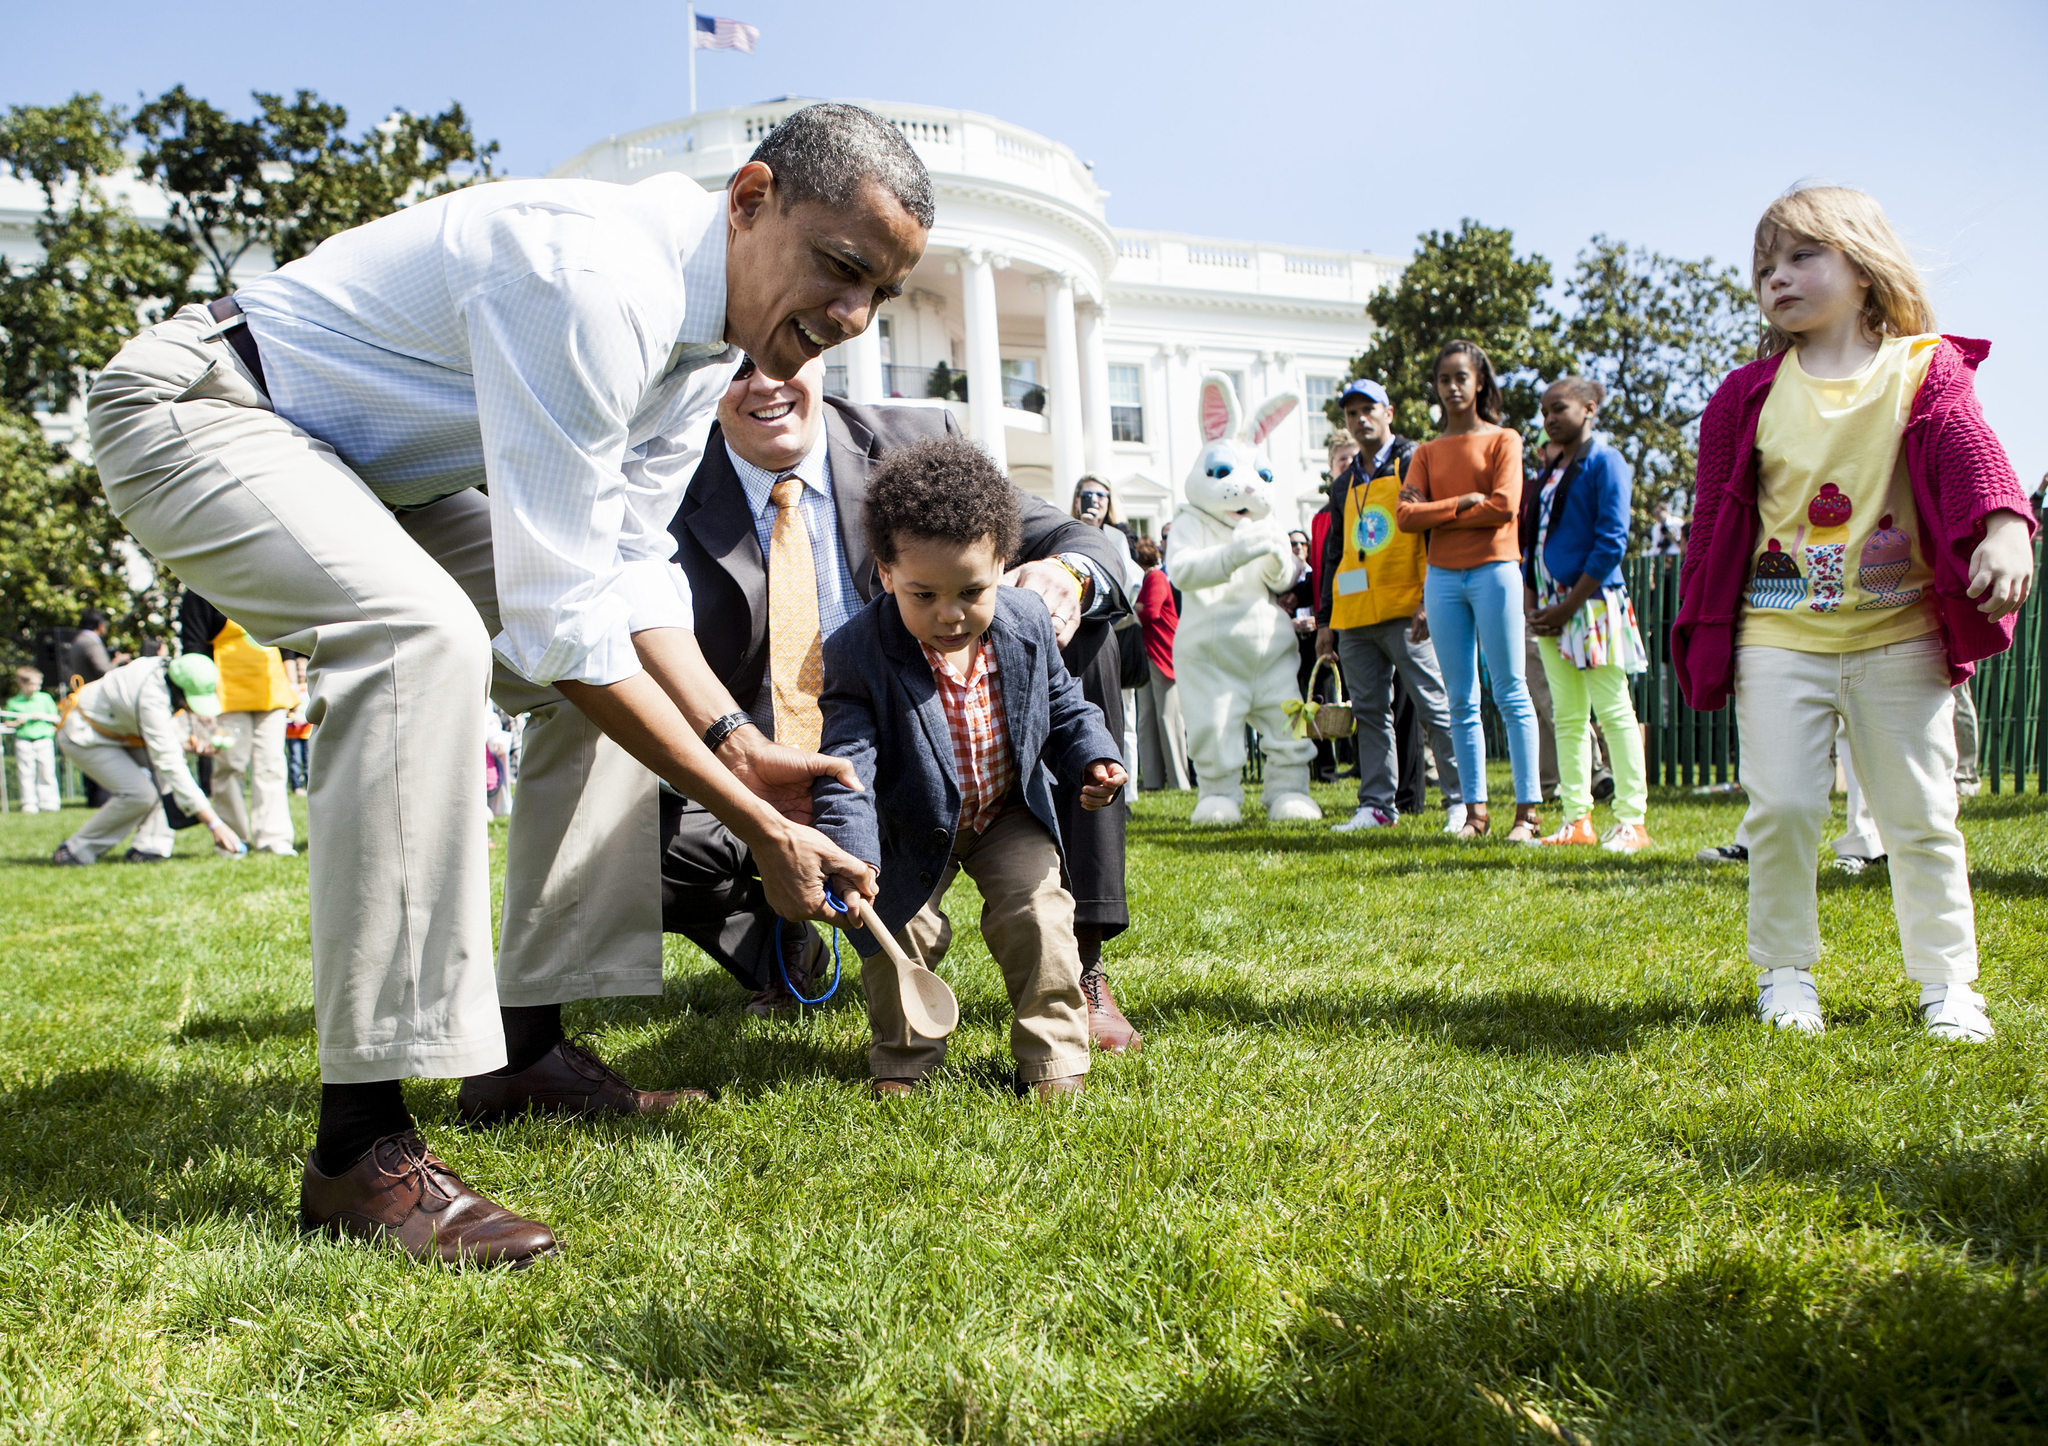 white house easter egg roll: 'it's special' - chicago tribune